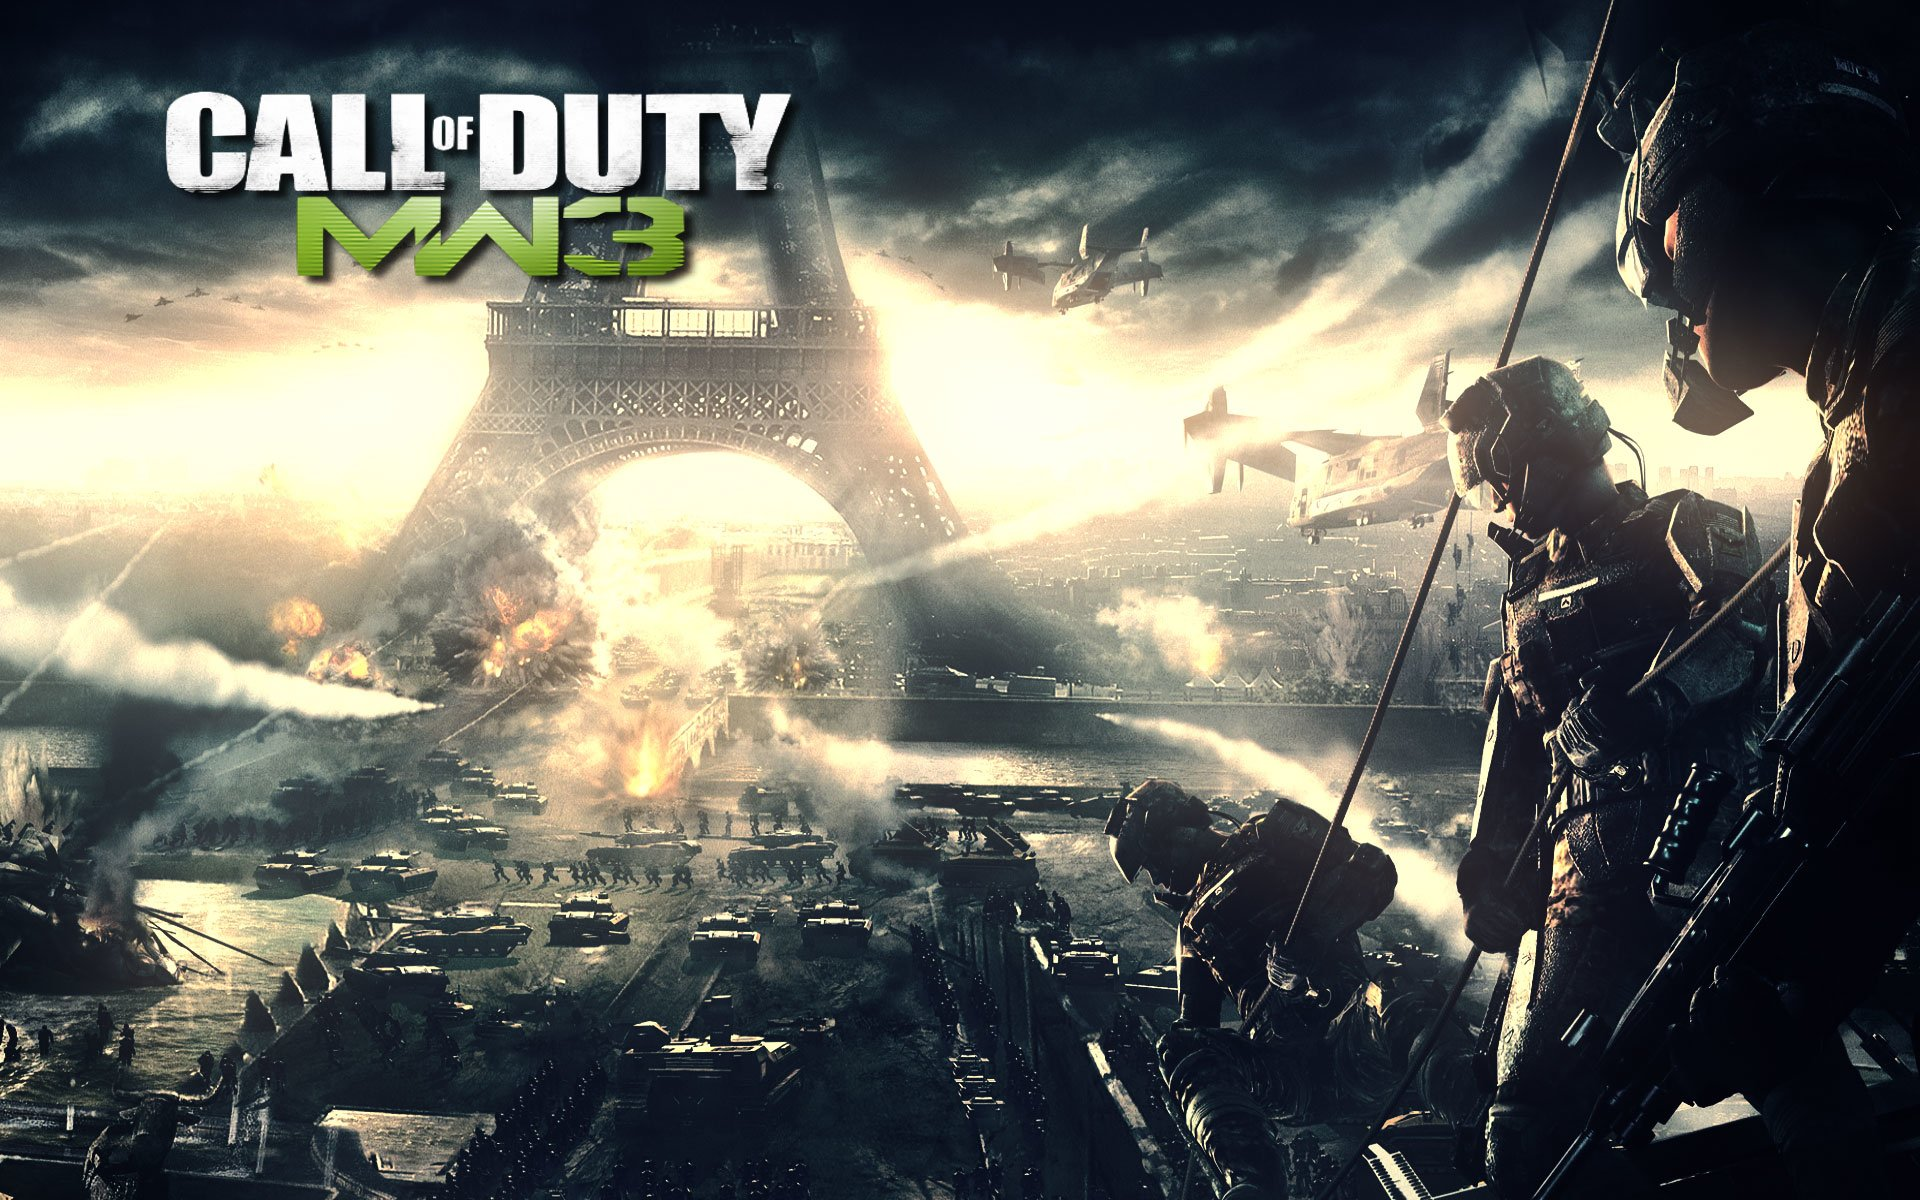 Call Of Duty Modern Warfare 3 Full HD Wallpaper And Background